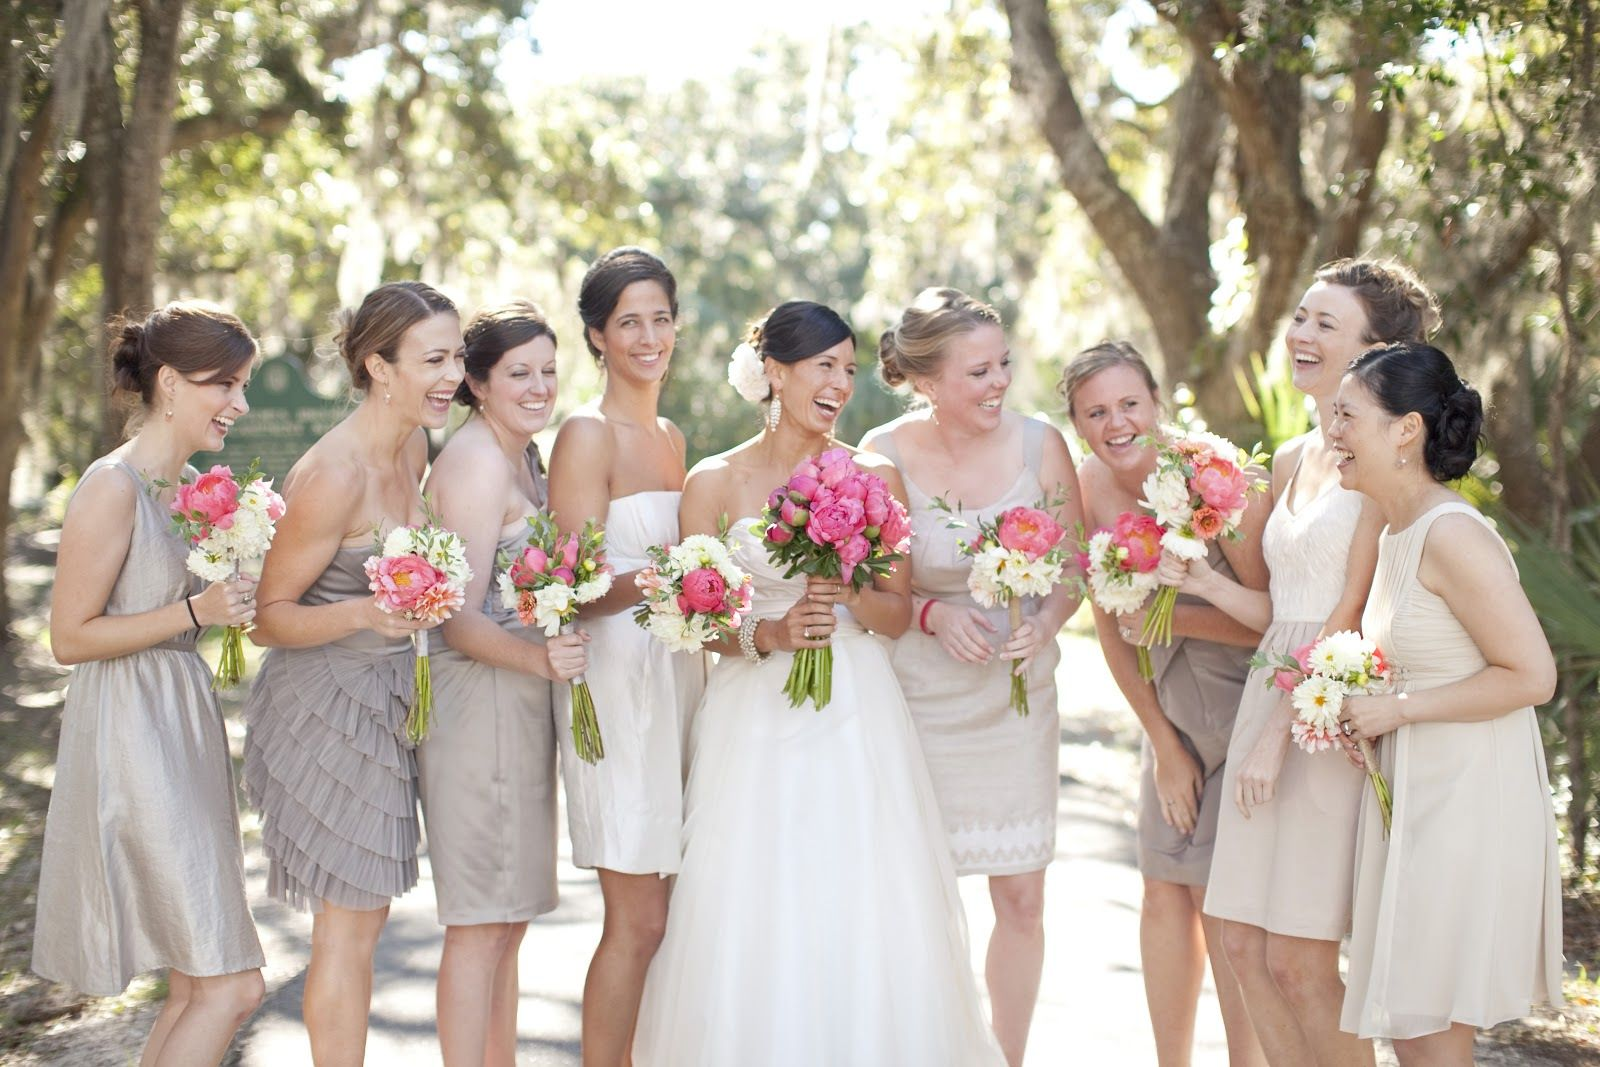 Mismatched bridesmaid dresses in neutral colors wedding me you bridesmaid mismatched bridesmaid dresses in neutral colors ombrellifo Images